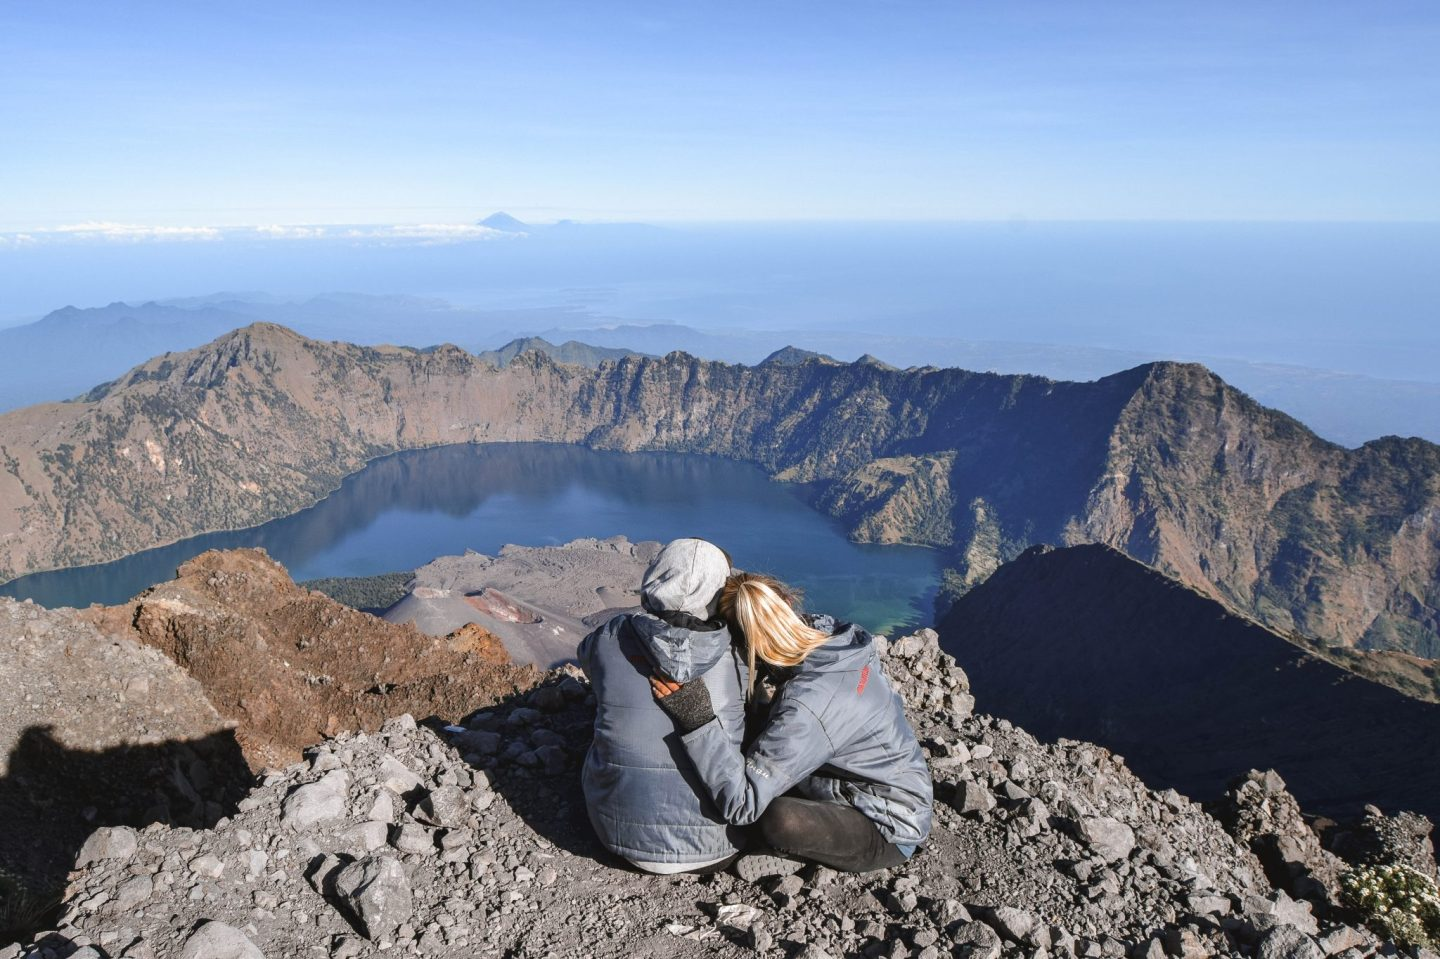 Wanderers & Warriors - Charlie & Lauren UK Travel Couple - Mount Rinjani Trekking Rinjani - Mount Rinjani Trek - Trekking Mt Rinjani